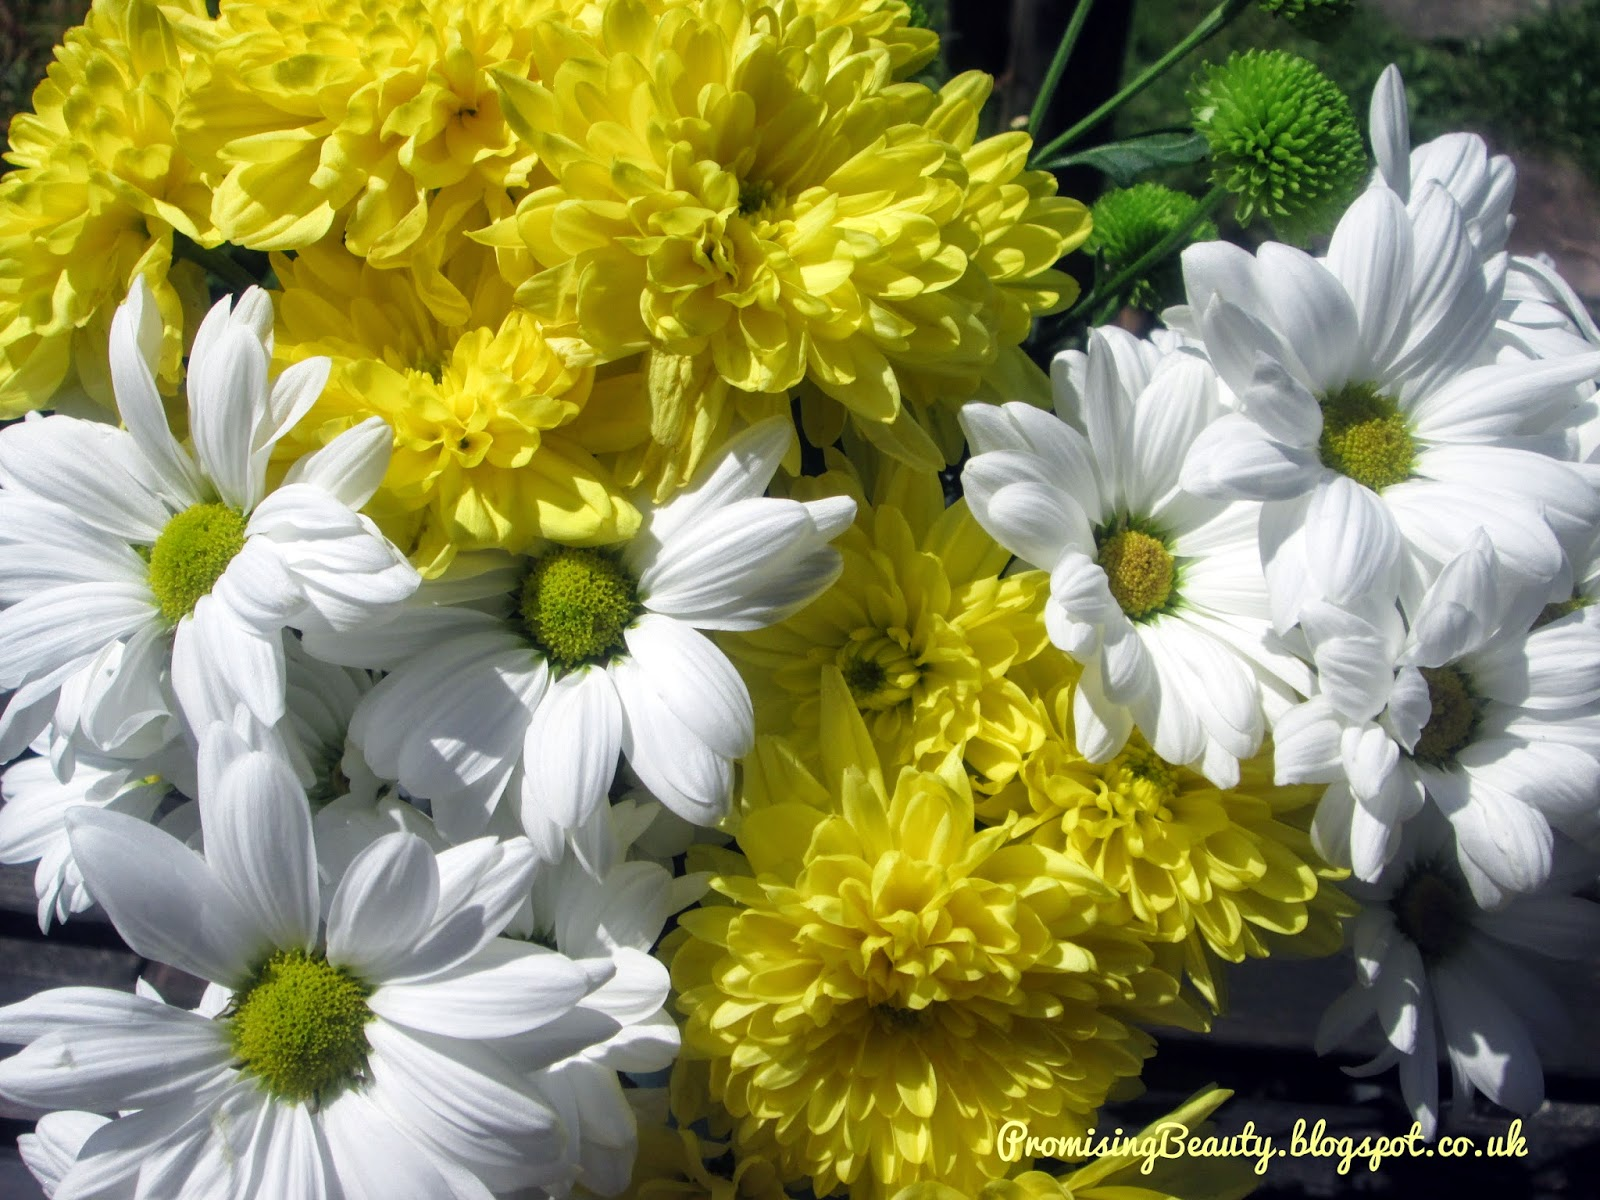 Springtime flowers, yellow chrysanthemums, and white daisies in the sunshine. Happy, gorgeous flowers!